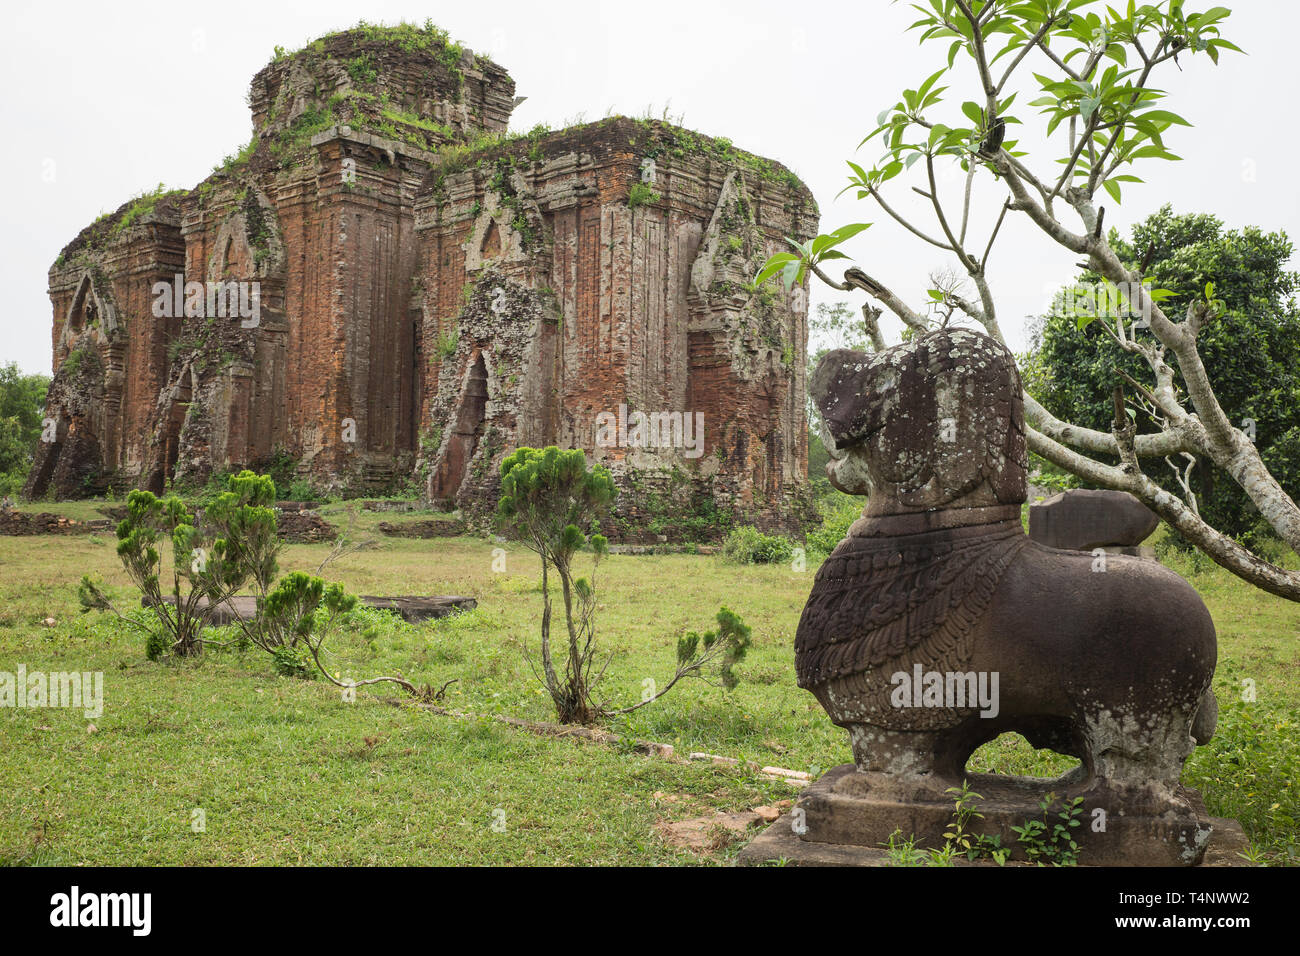 Vietnamese stone dog statue in Chien Dan, Champa ancient tower in Quang Nam, Vietnam - Stock Image